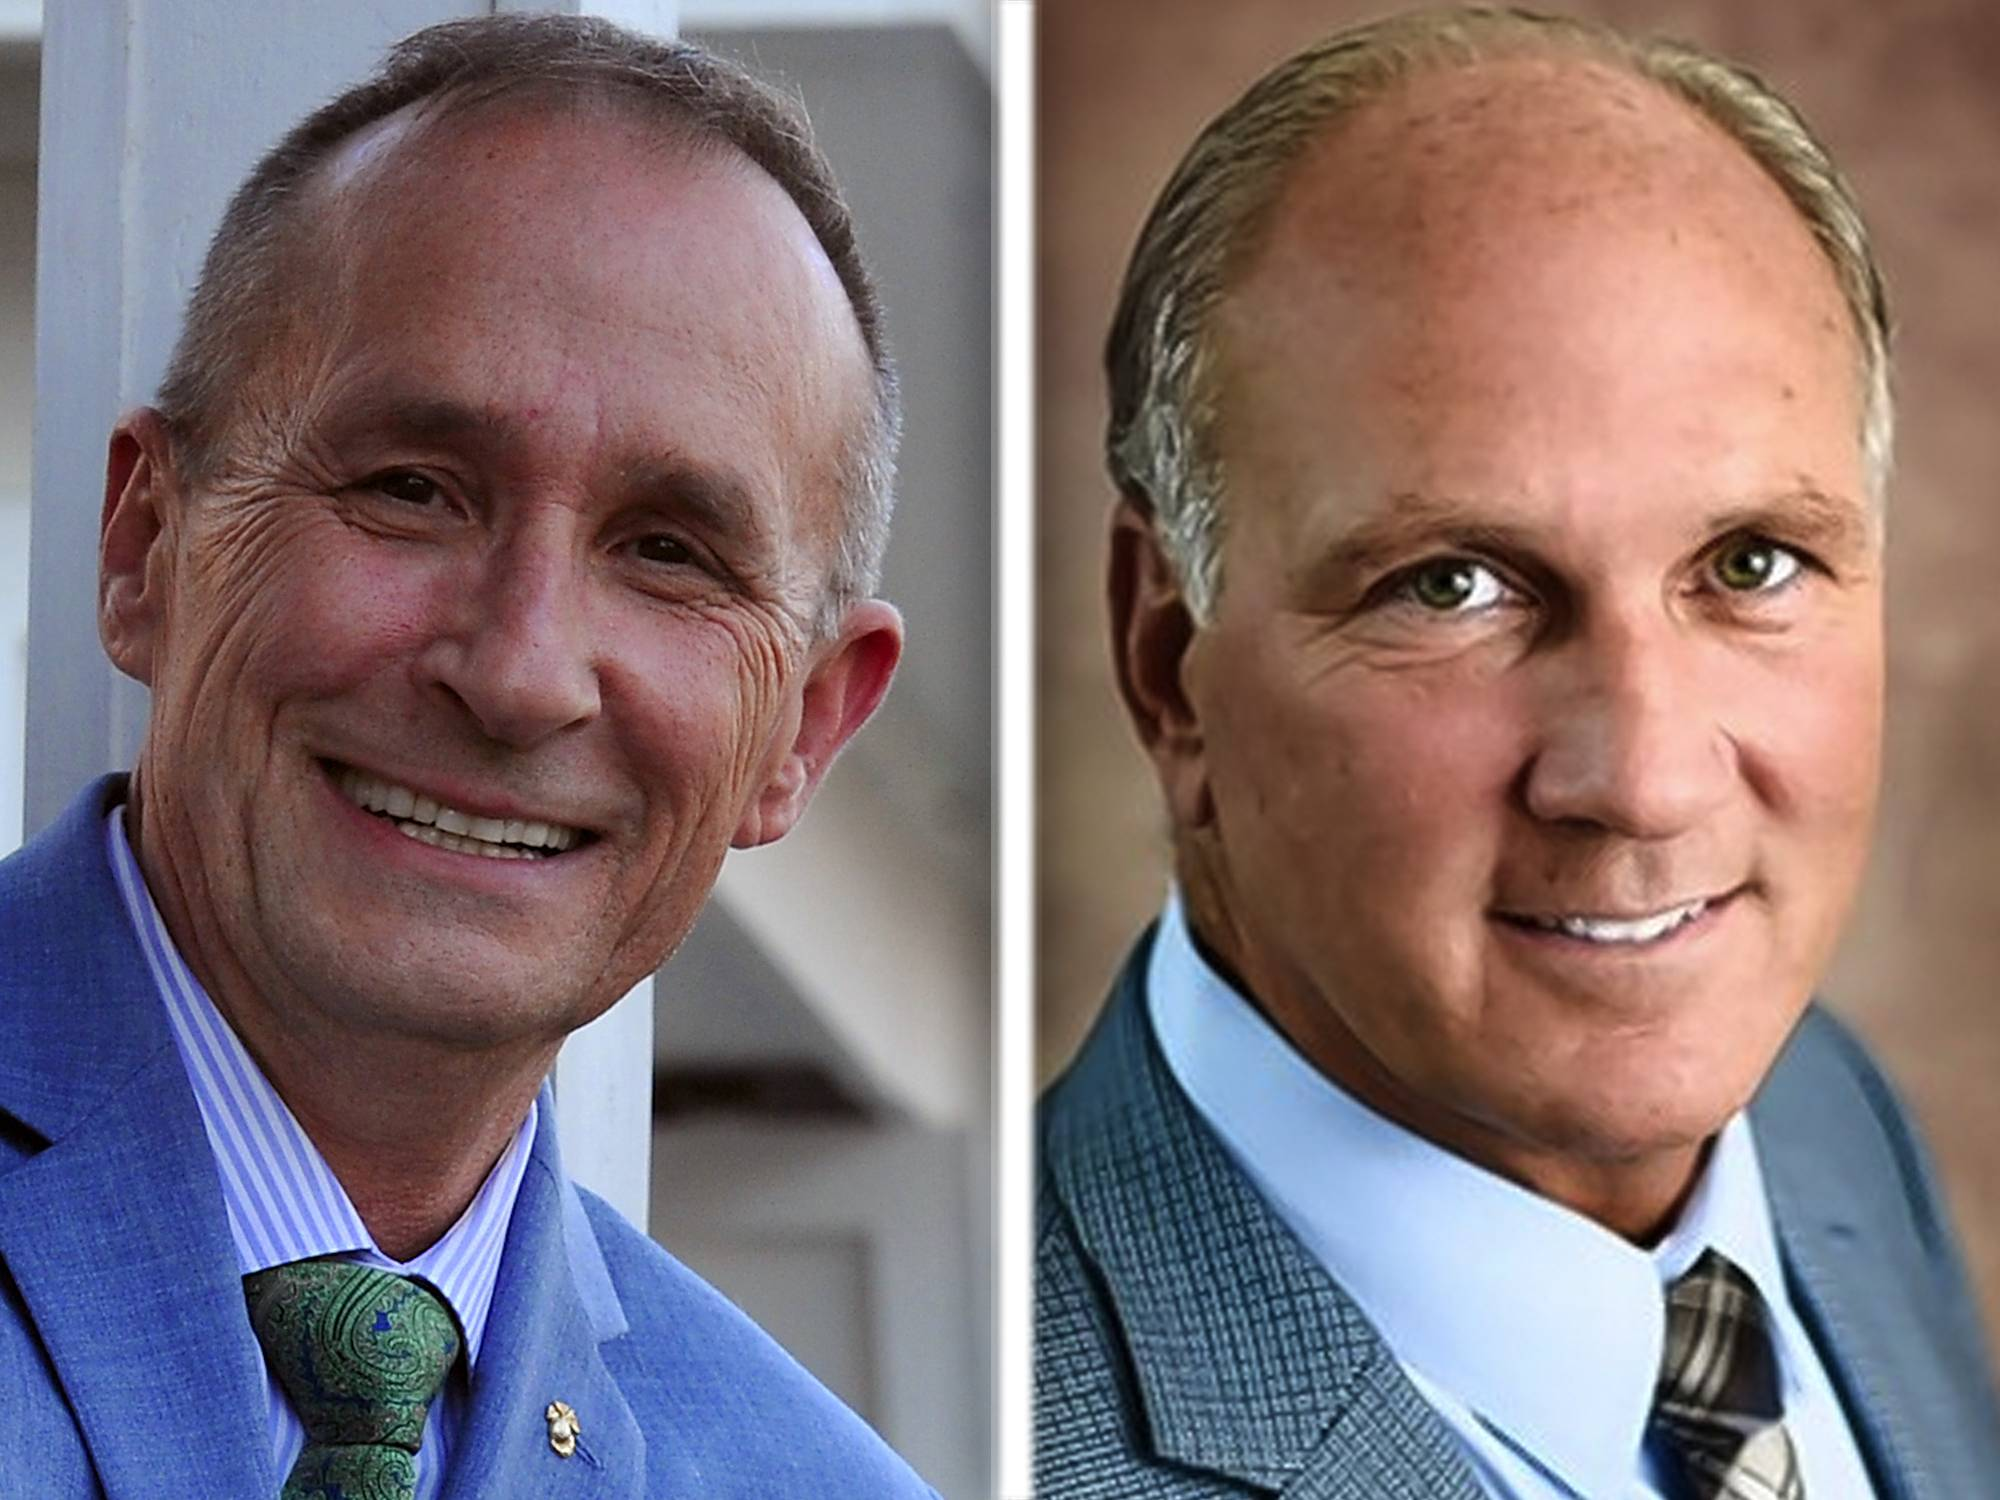 Naperville mayoral challenger questions intent of incumbent's opposition research